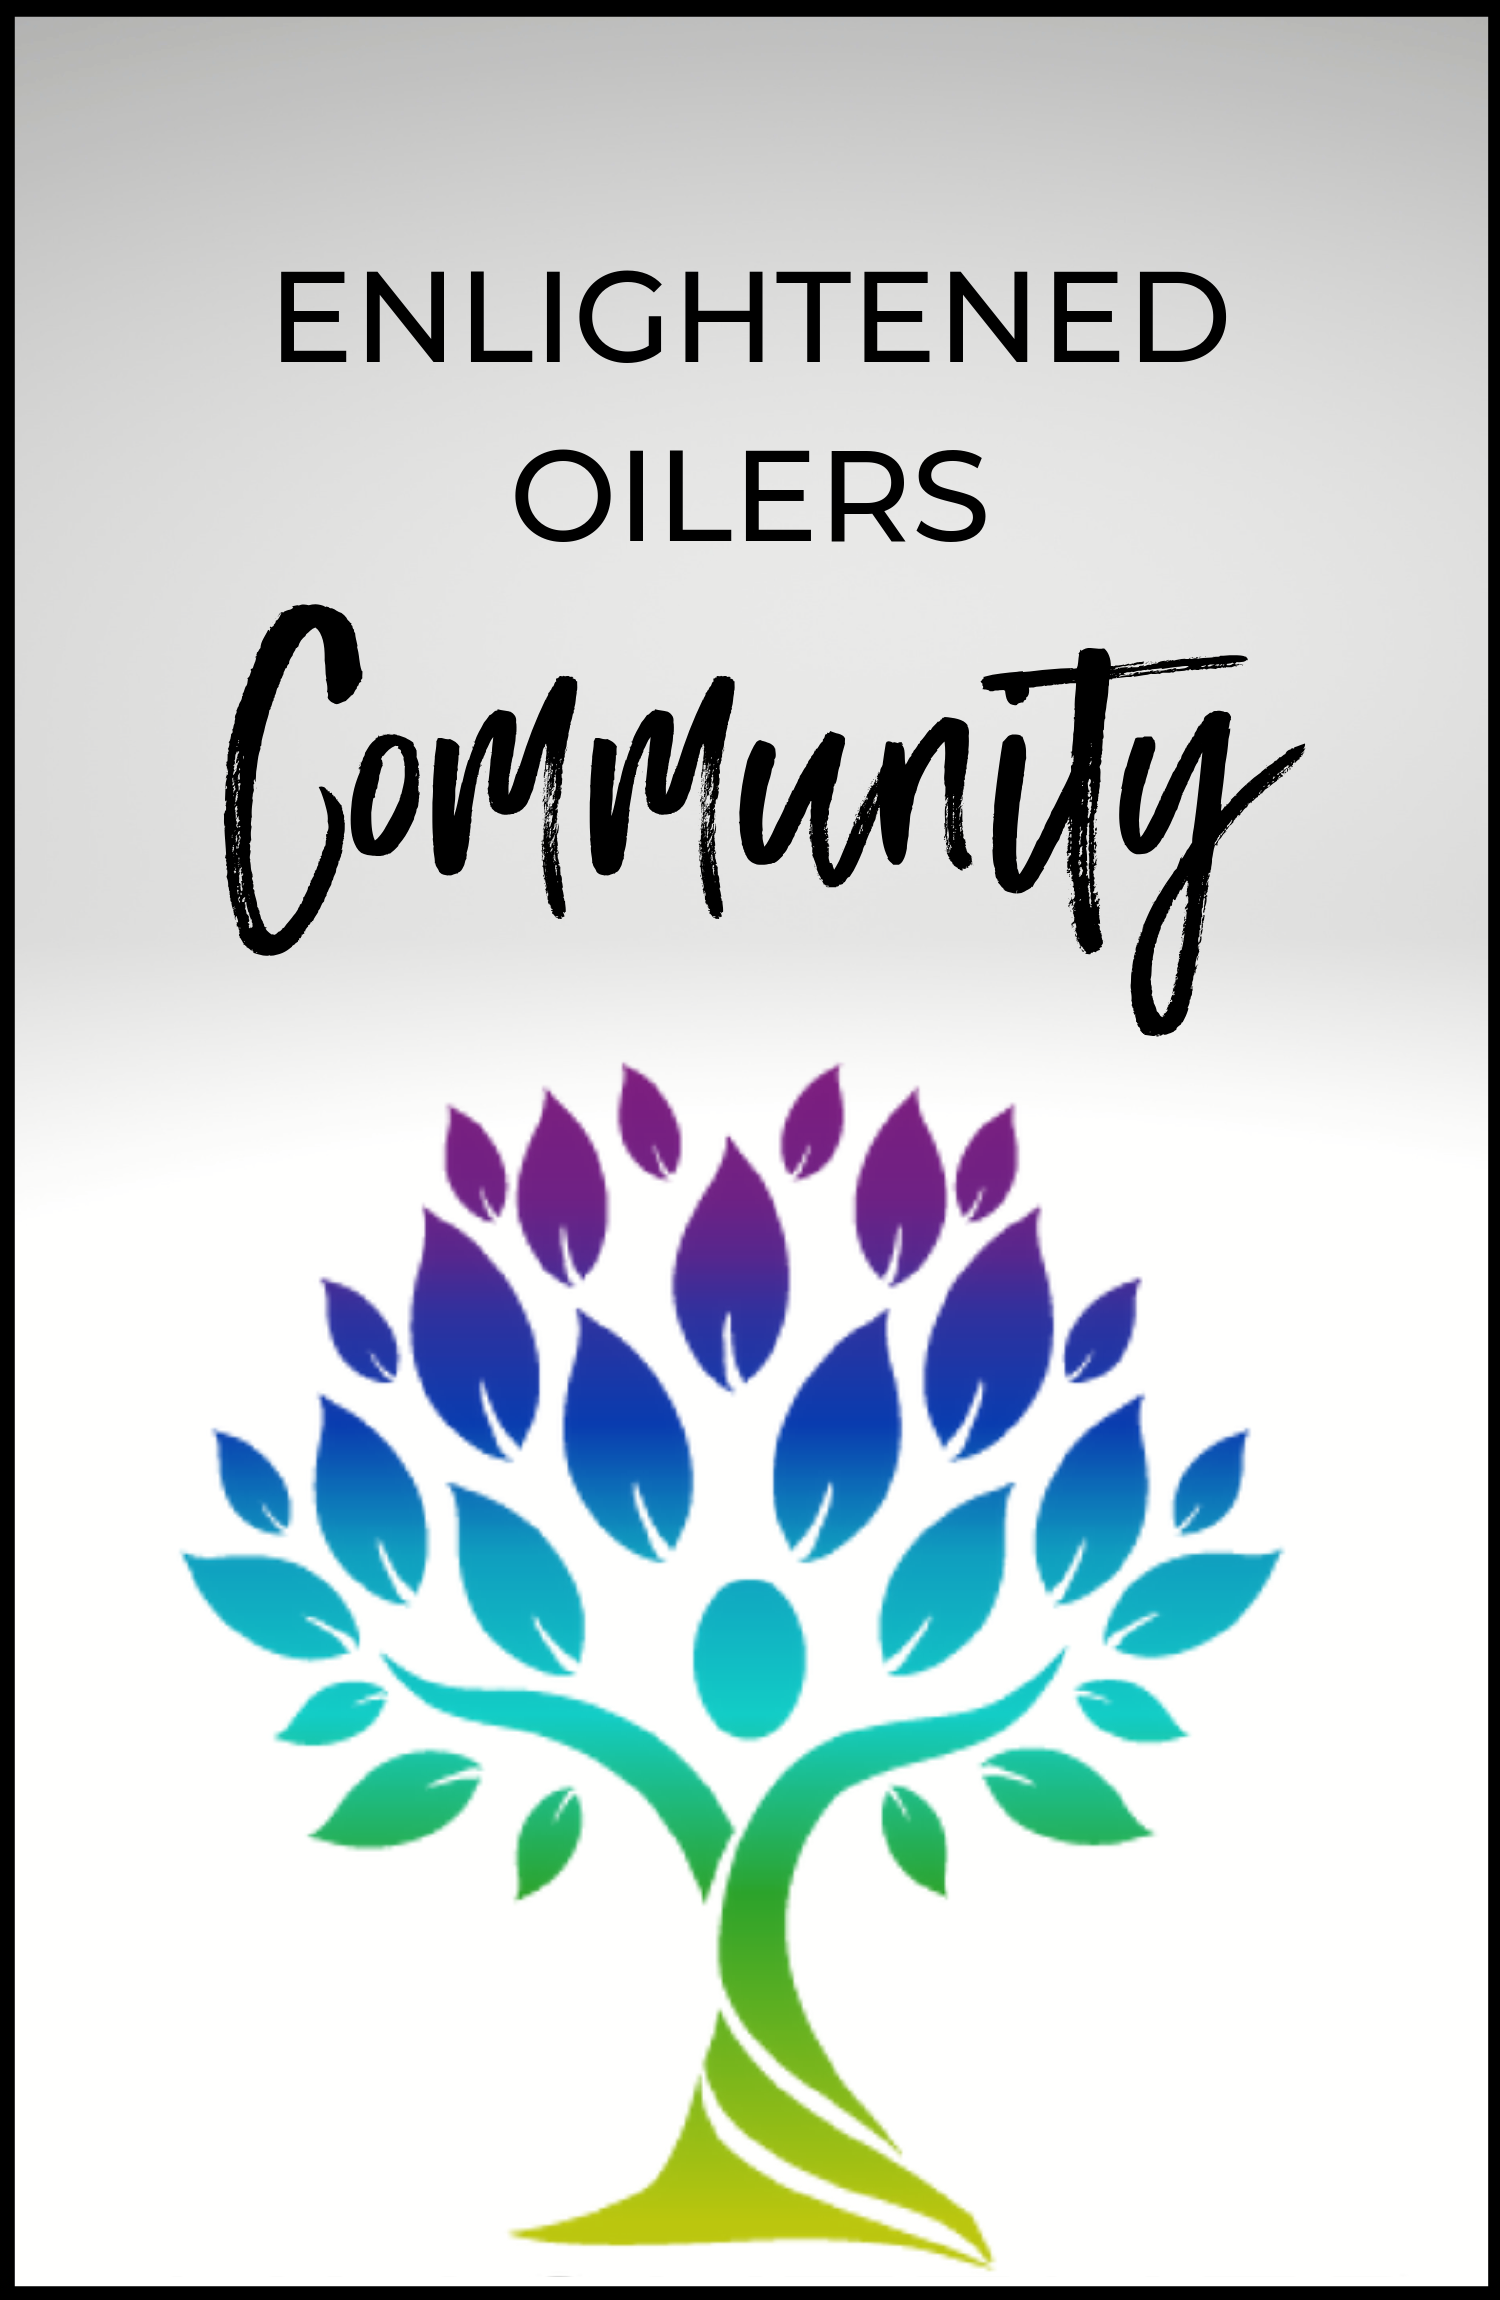 The Enlightened Oilers Community